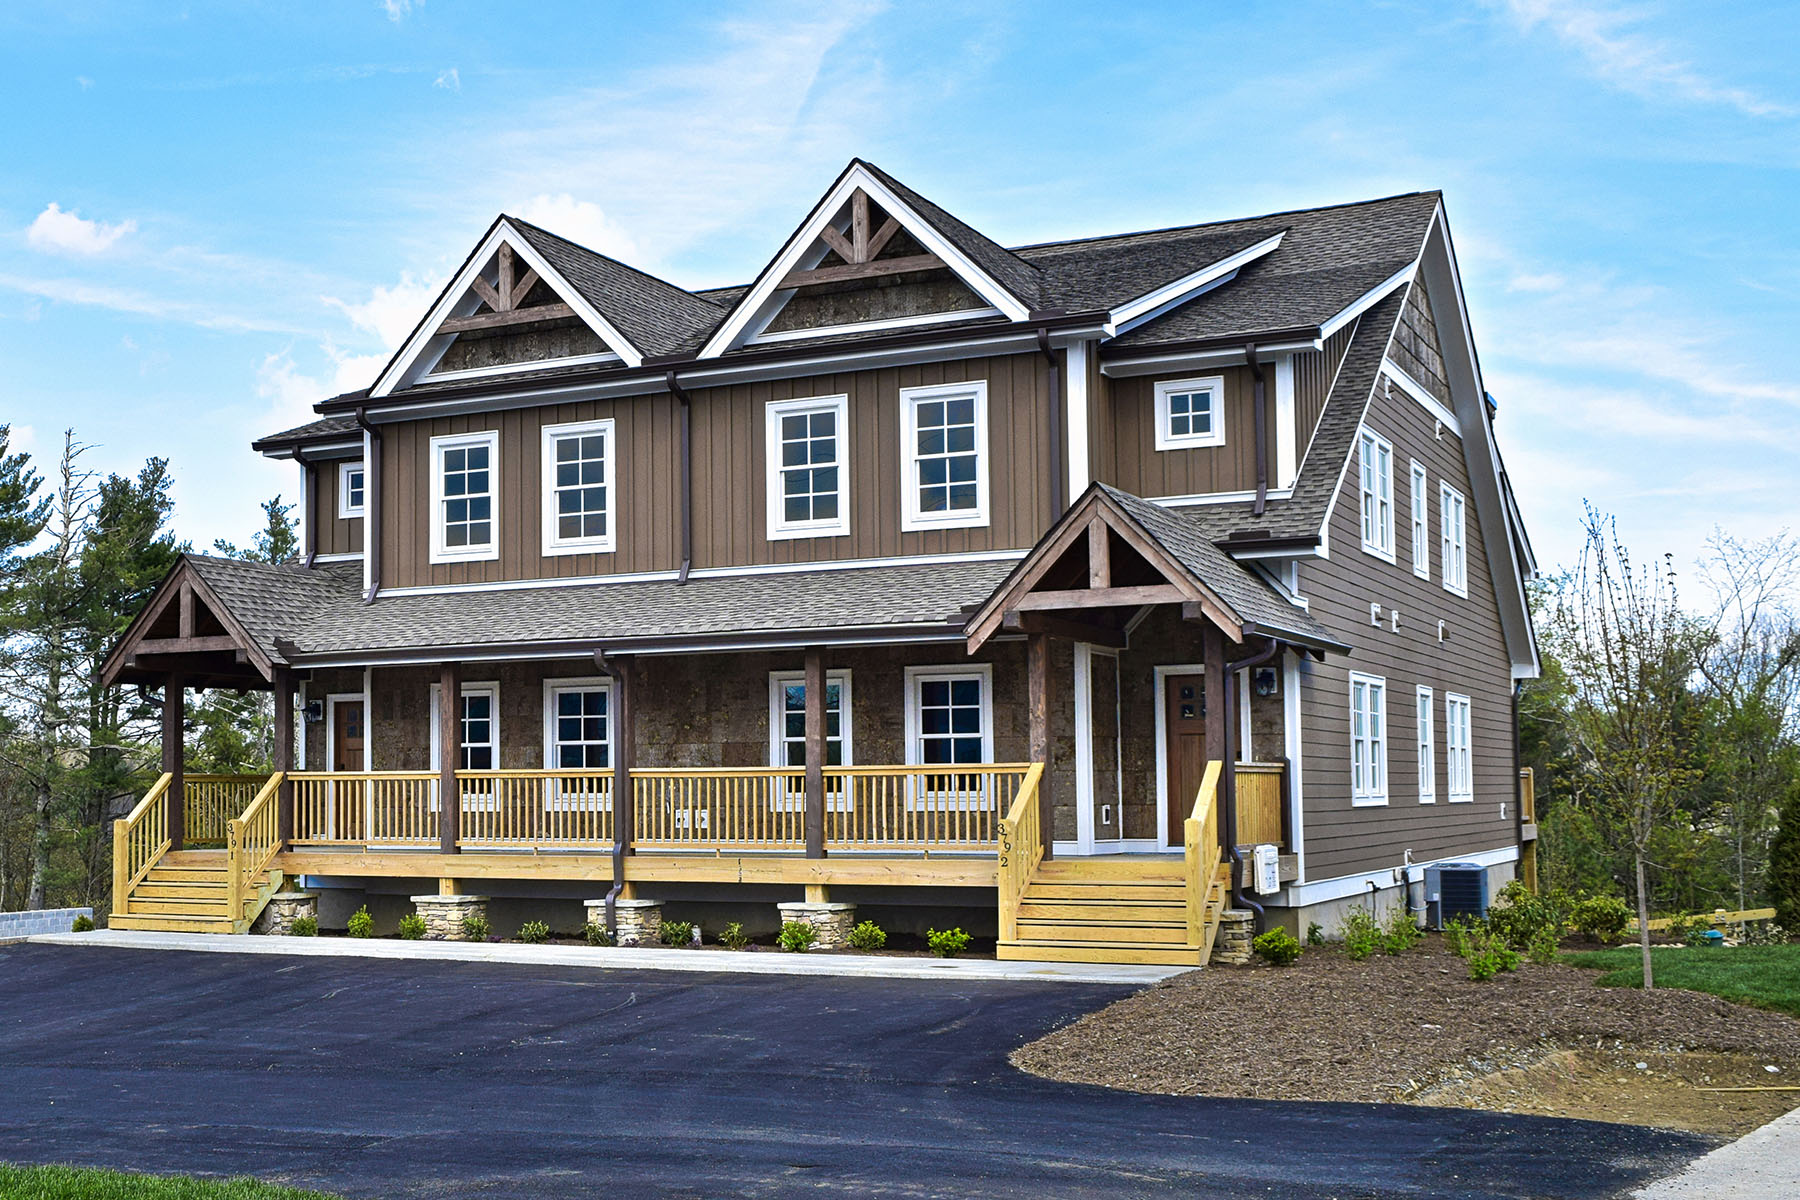 Single Family Homes for Sale at THE TOWNES AT BLOWING ROCK 377 Chestnut Dr , 2 Blowing Rock, North Carolina 28605 United States